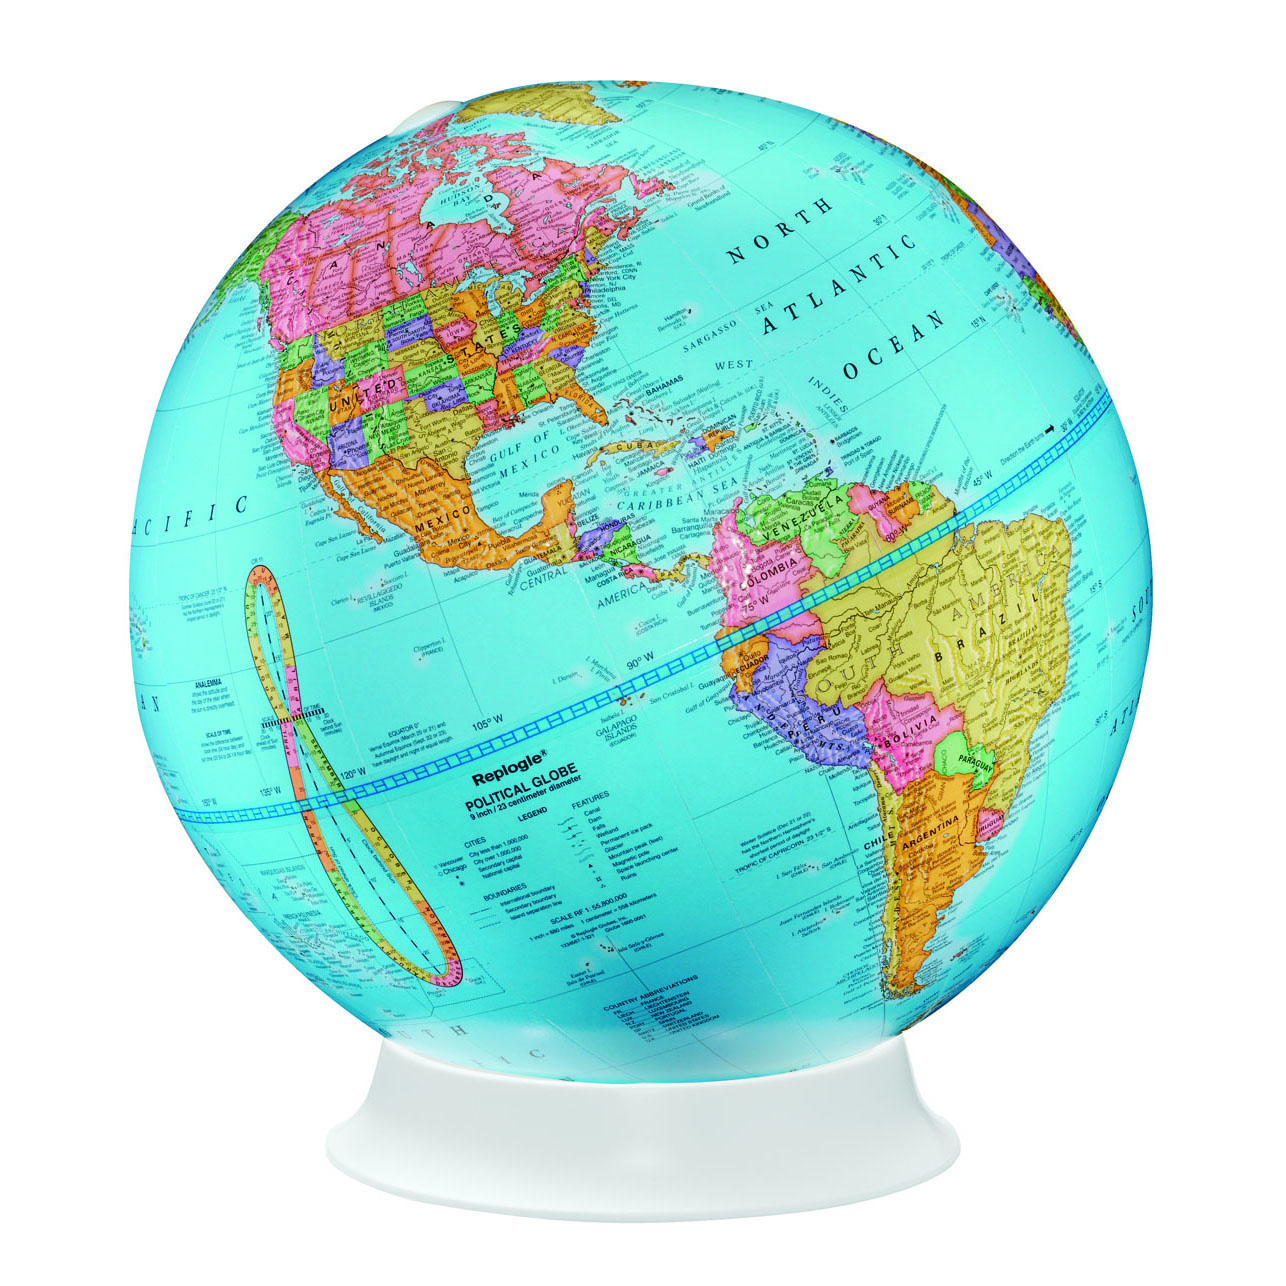 Apollo 9 world globe by replogle swiftmaps apollo 9 world globe by replogle gumiabroncs Images